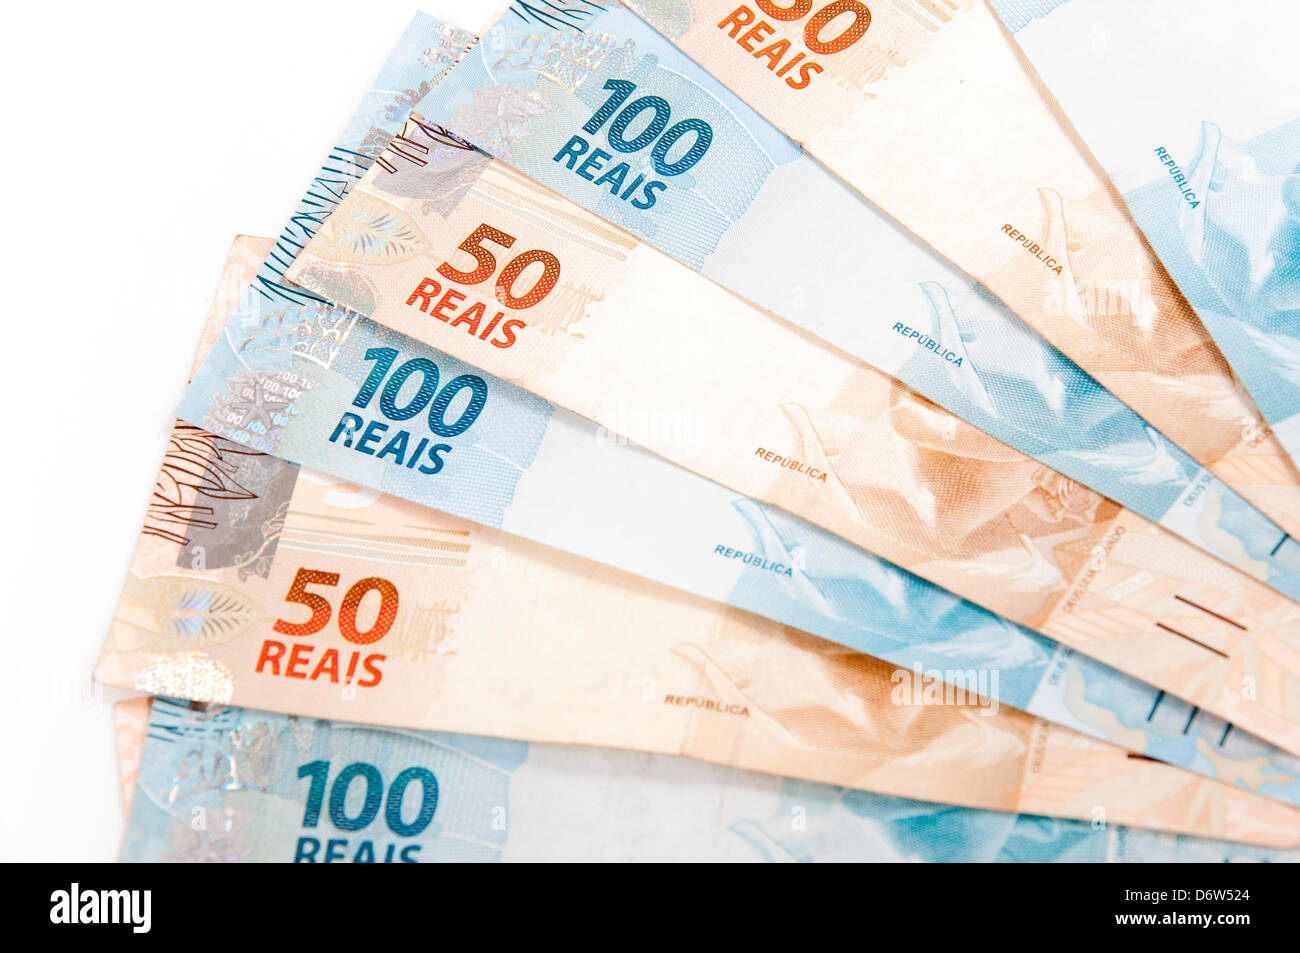 Brazilian currency stock photo royalty free image 55871820 alamy brazilian currency biocorpaavc Image collections